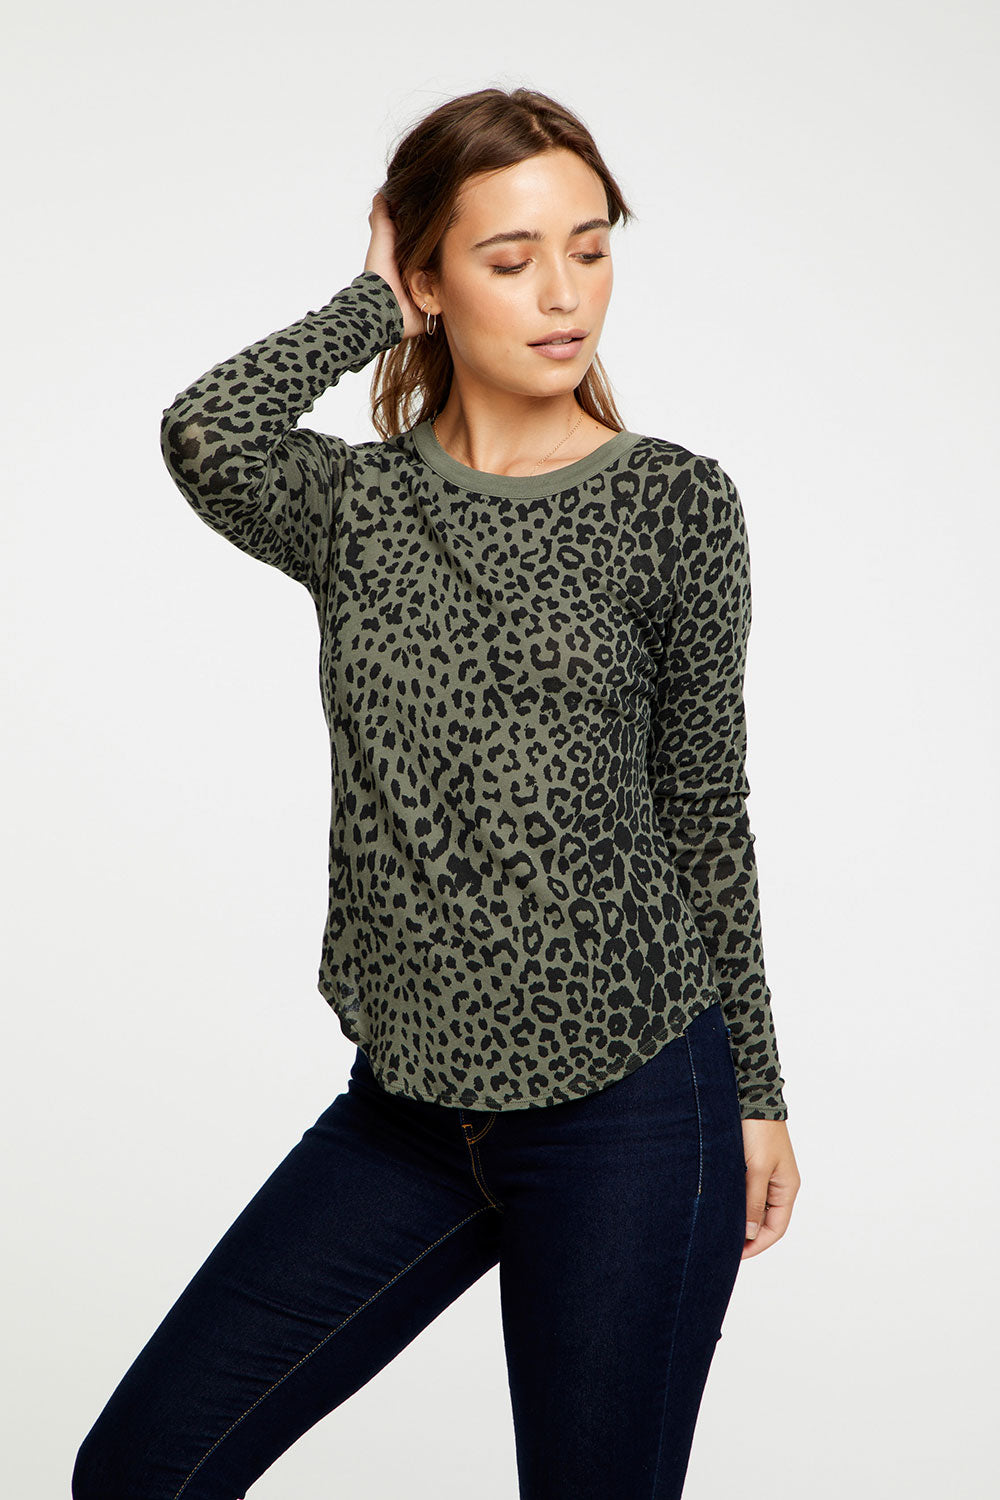 Animal Print Long Sleeve, WOMENS, chaserbrand.com,chaser clothing,chaser apparel,chaser los angeles